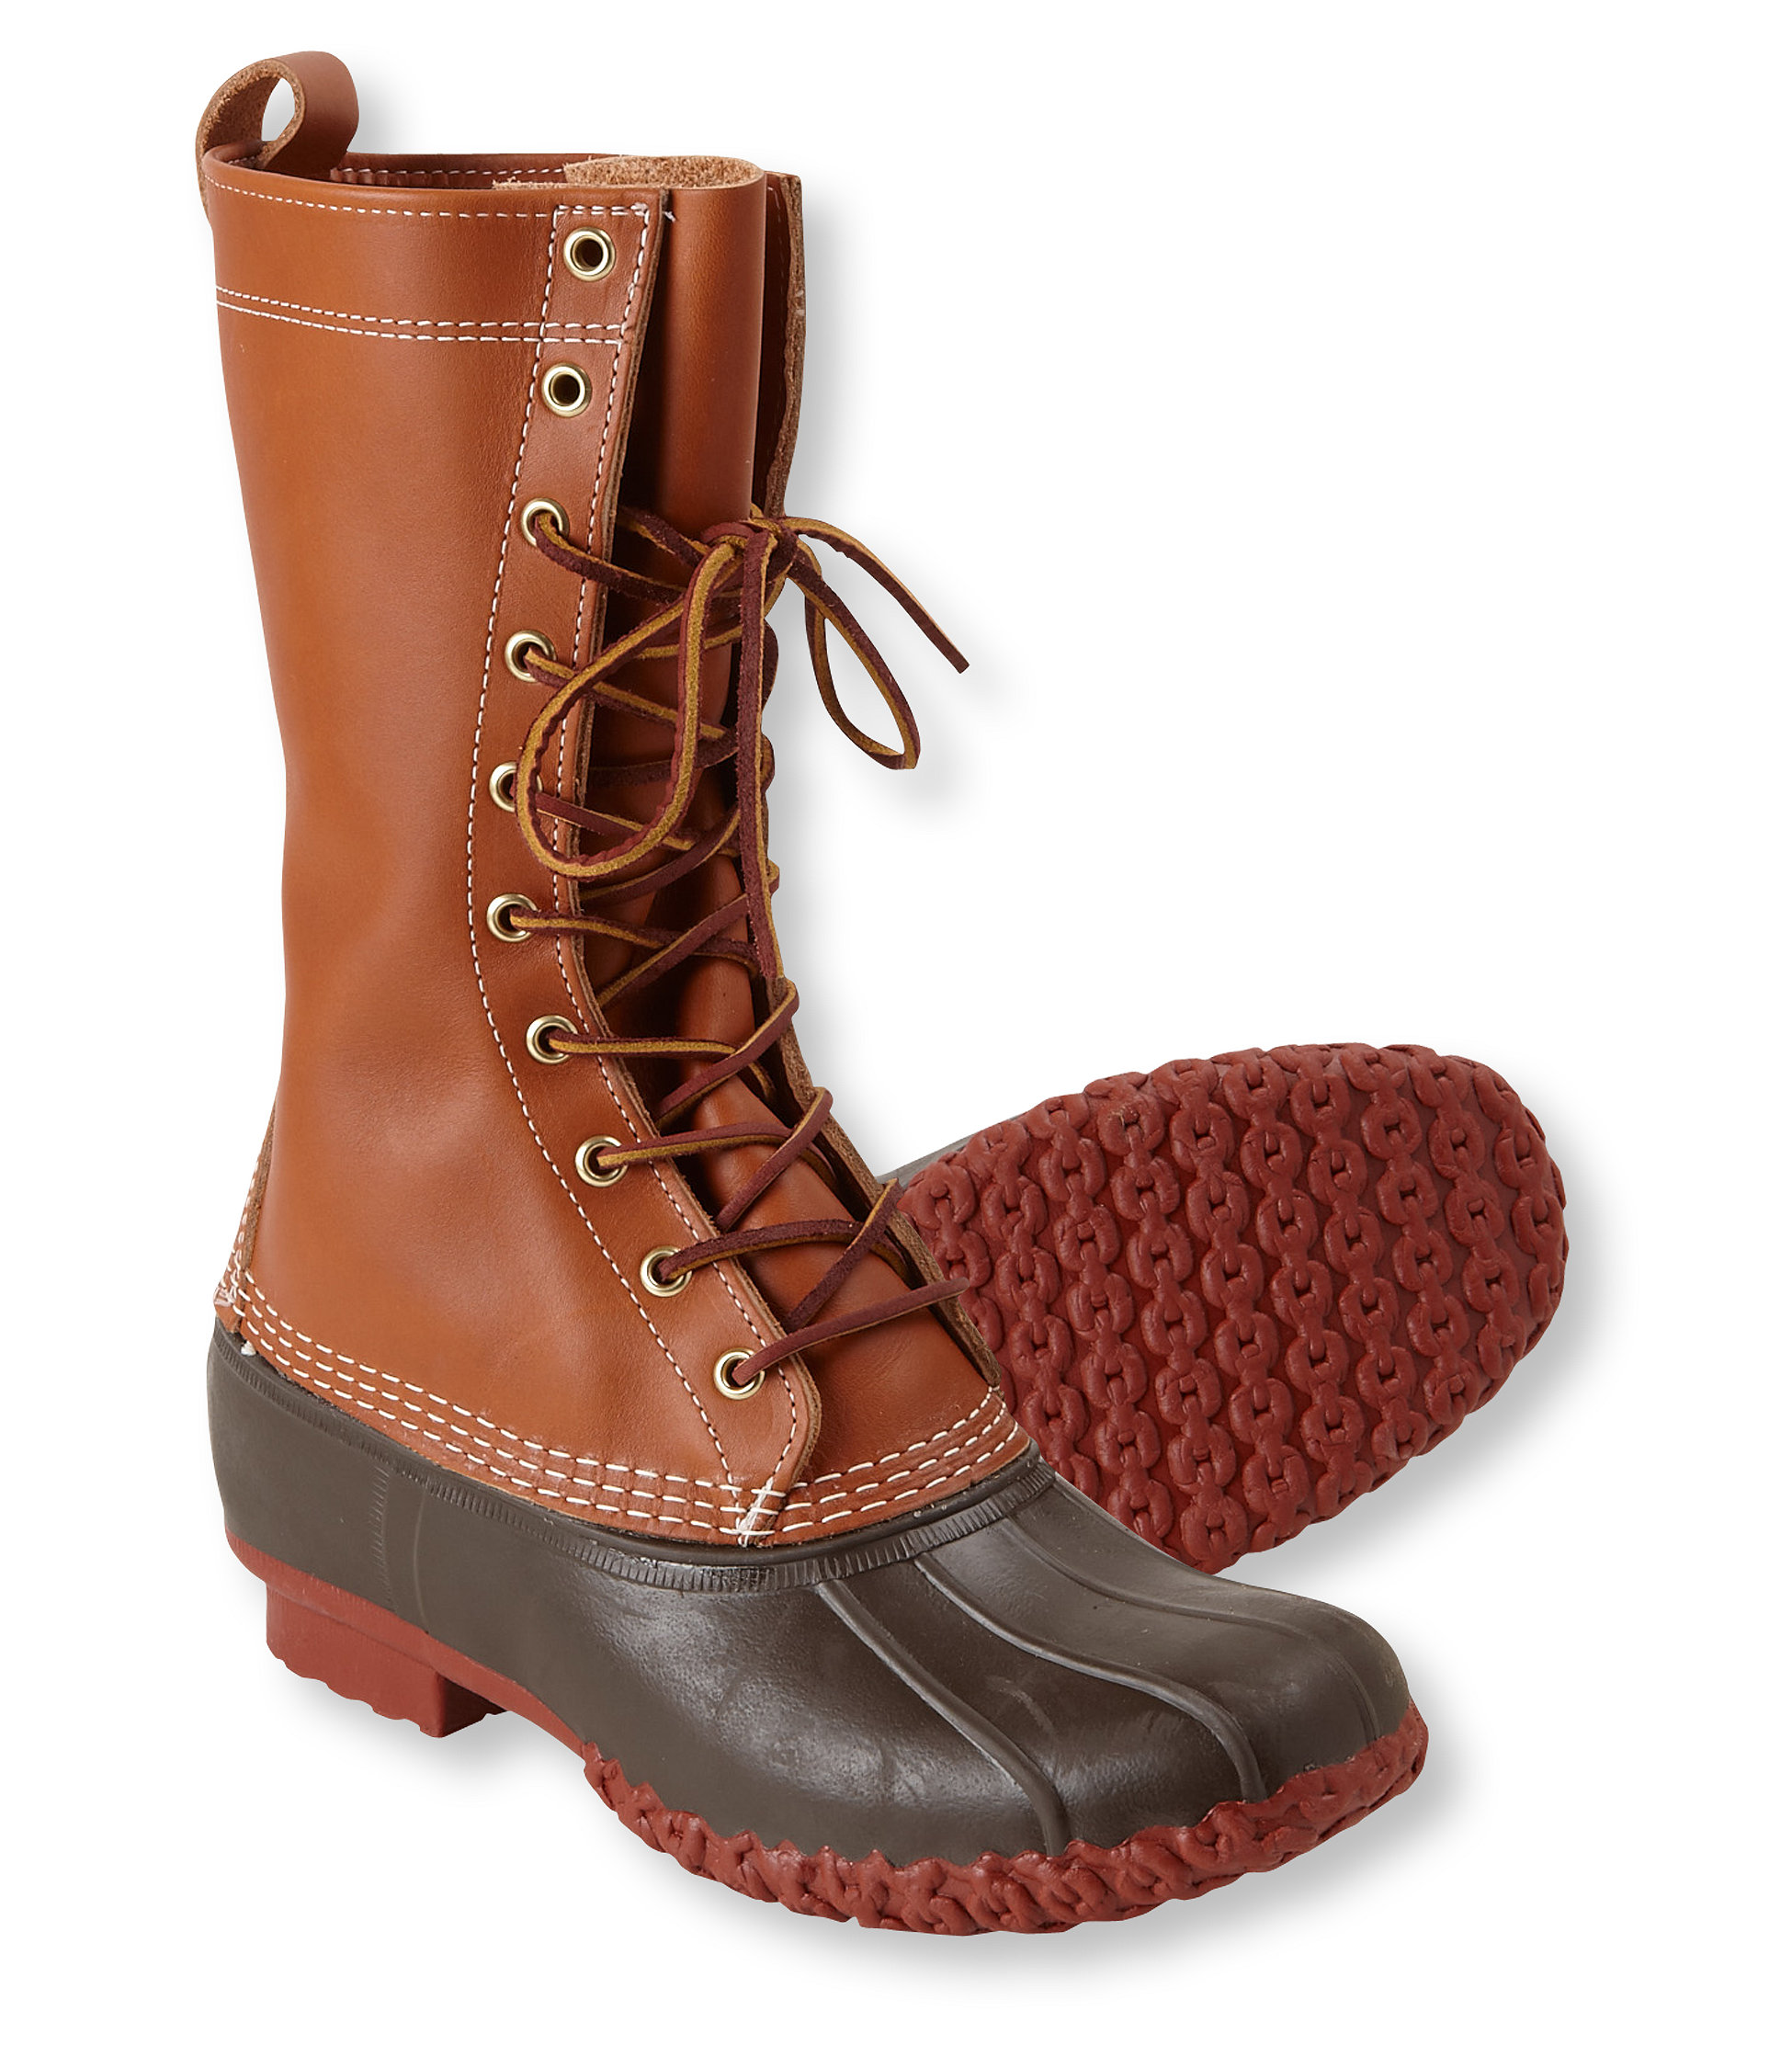 L.L.Bean 100th Anniversary Maine Hunting Shoes